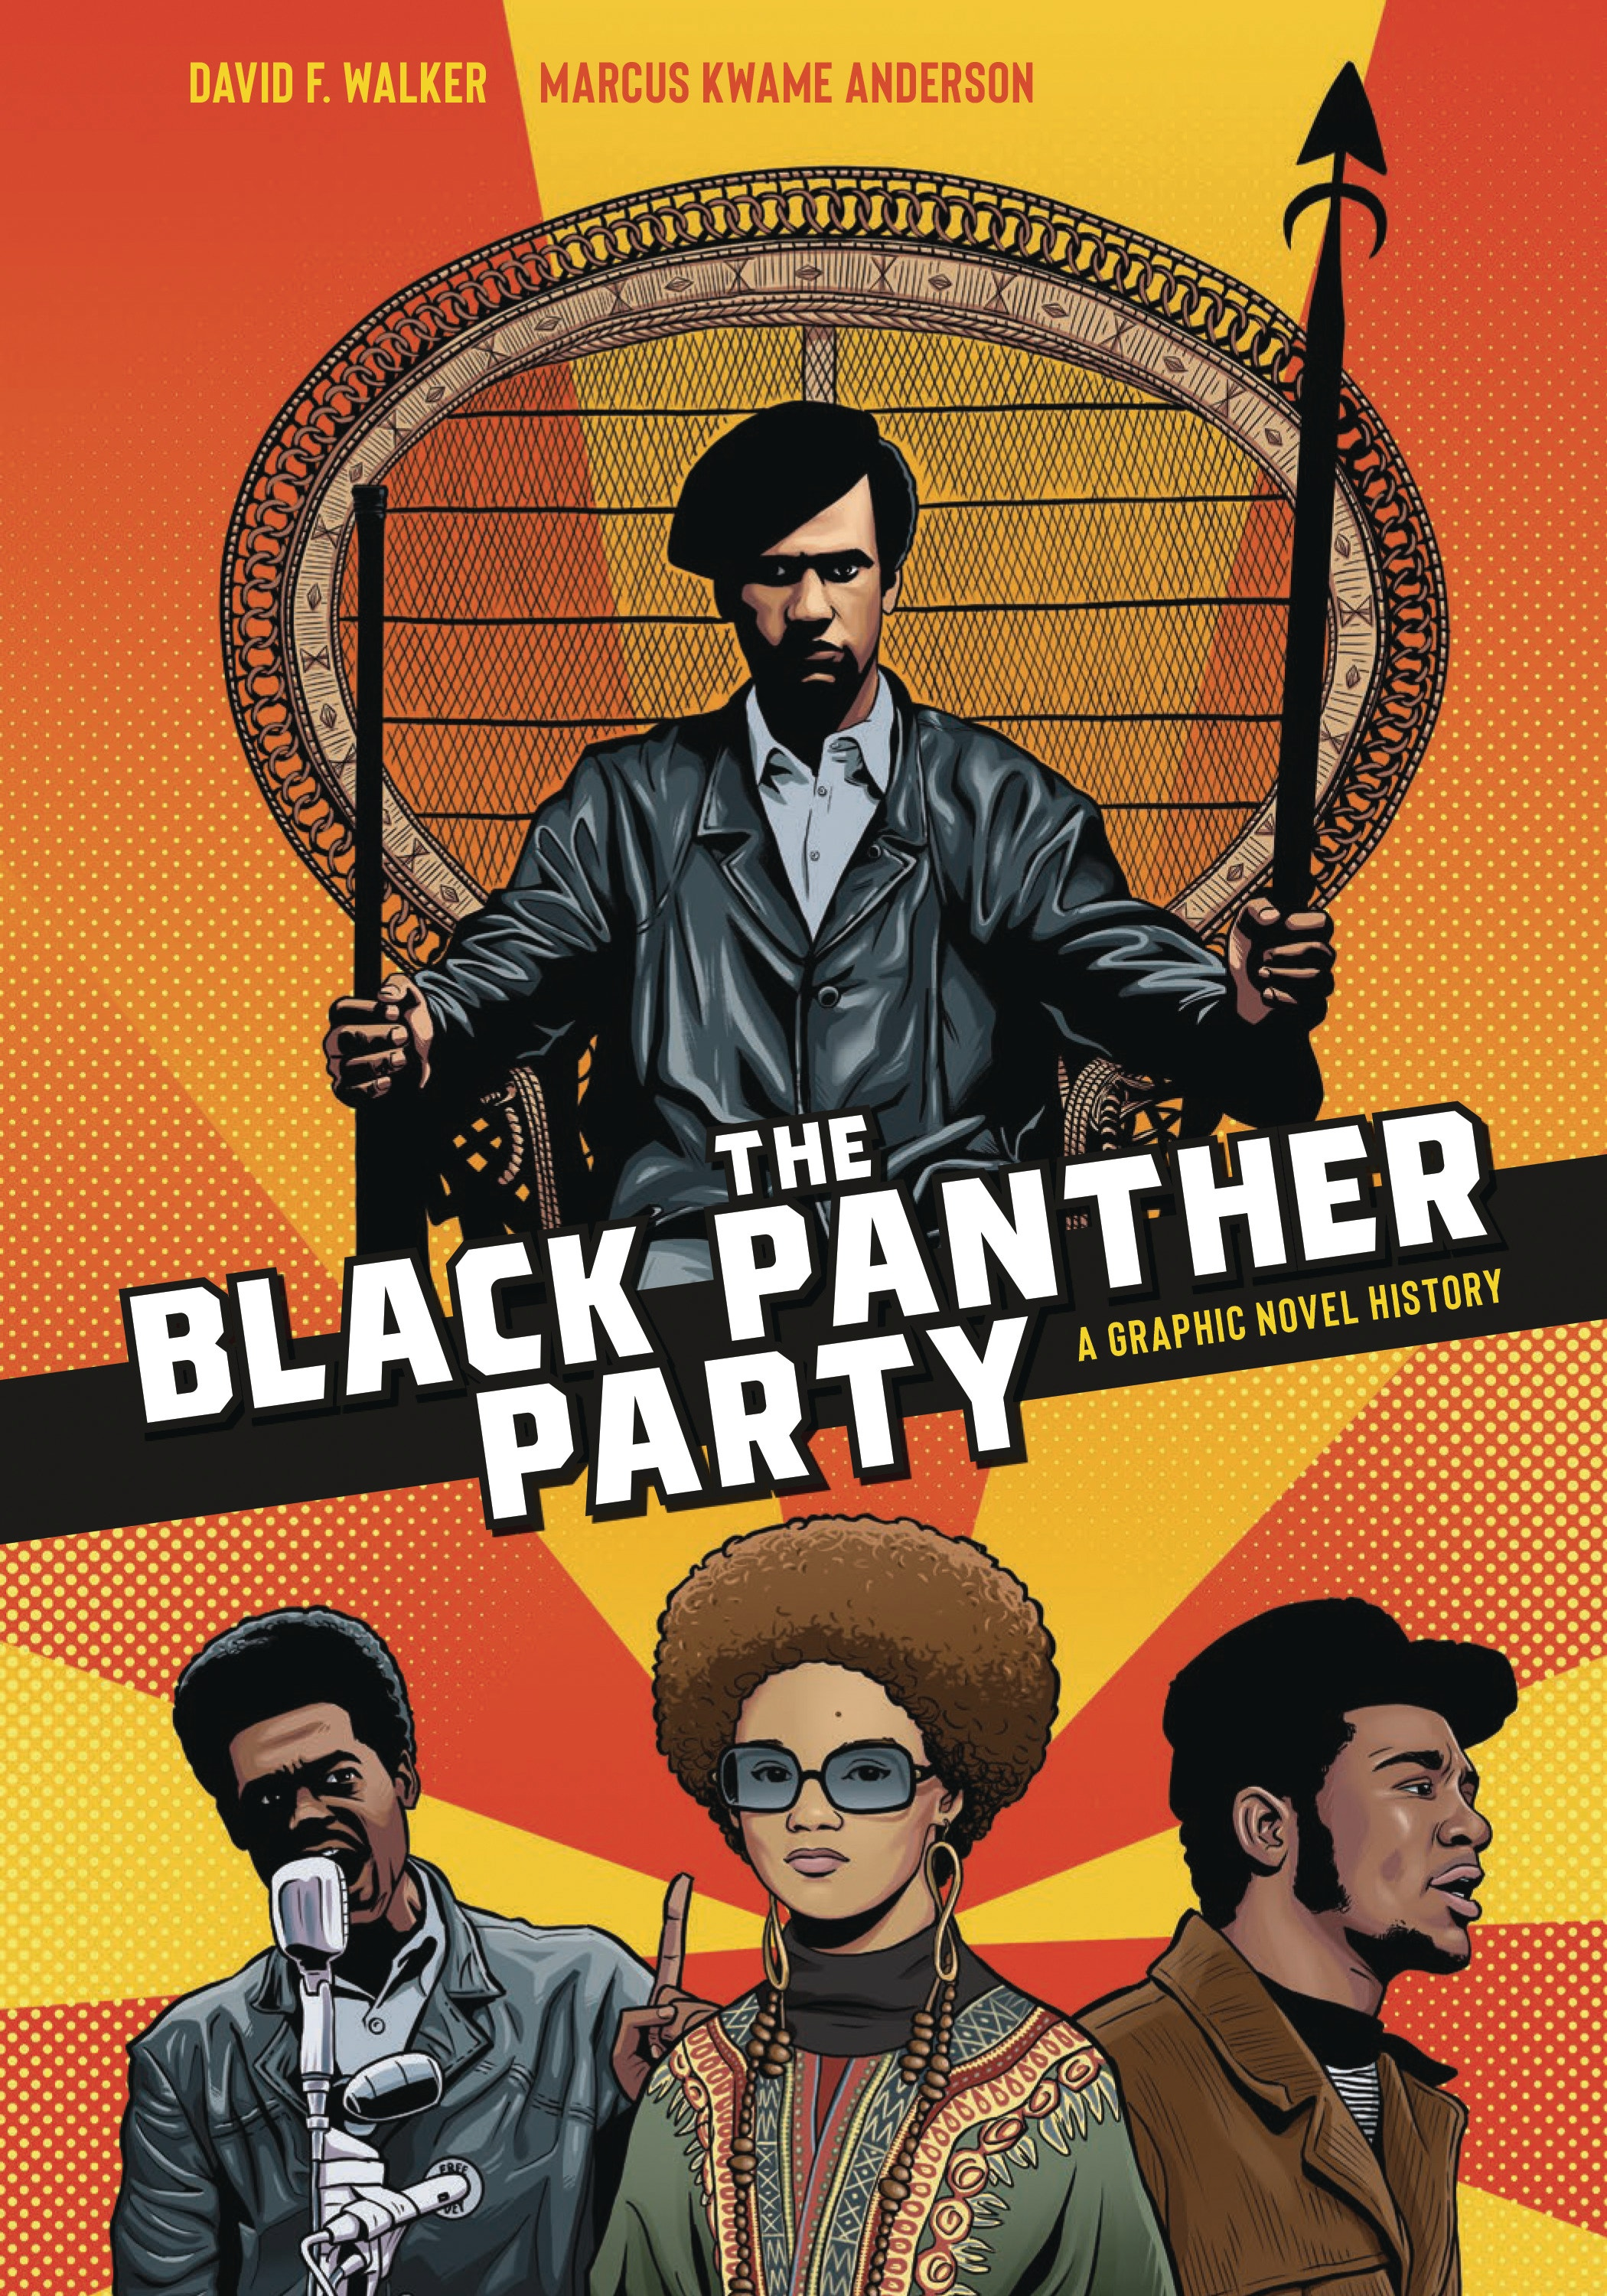 David F. Walker, Marcus Kwame Anderson: The Black Panther Party - A Graphic History